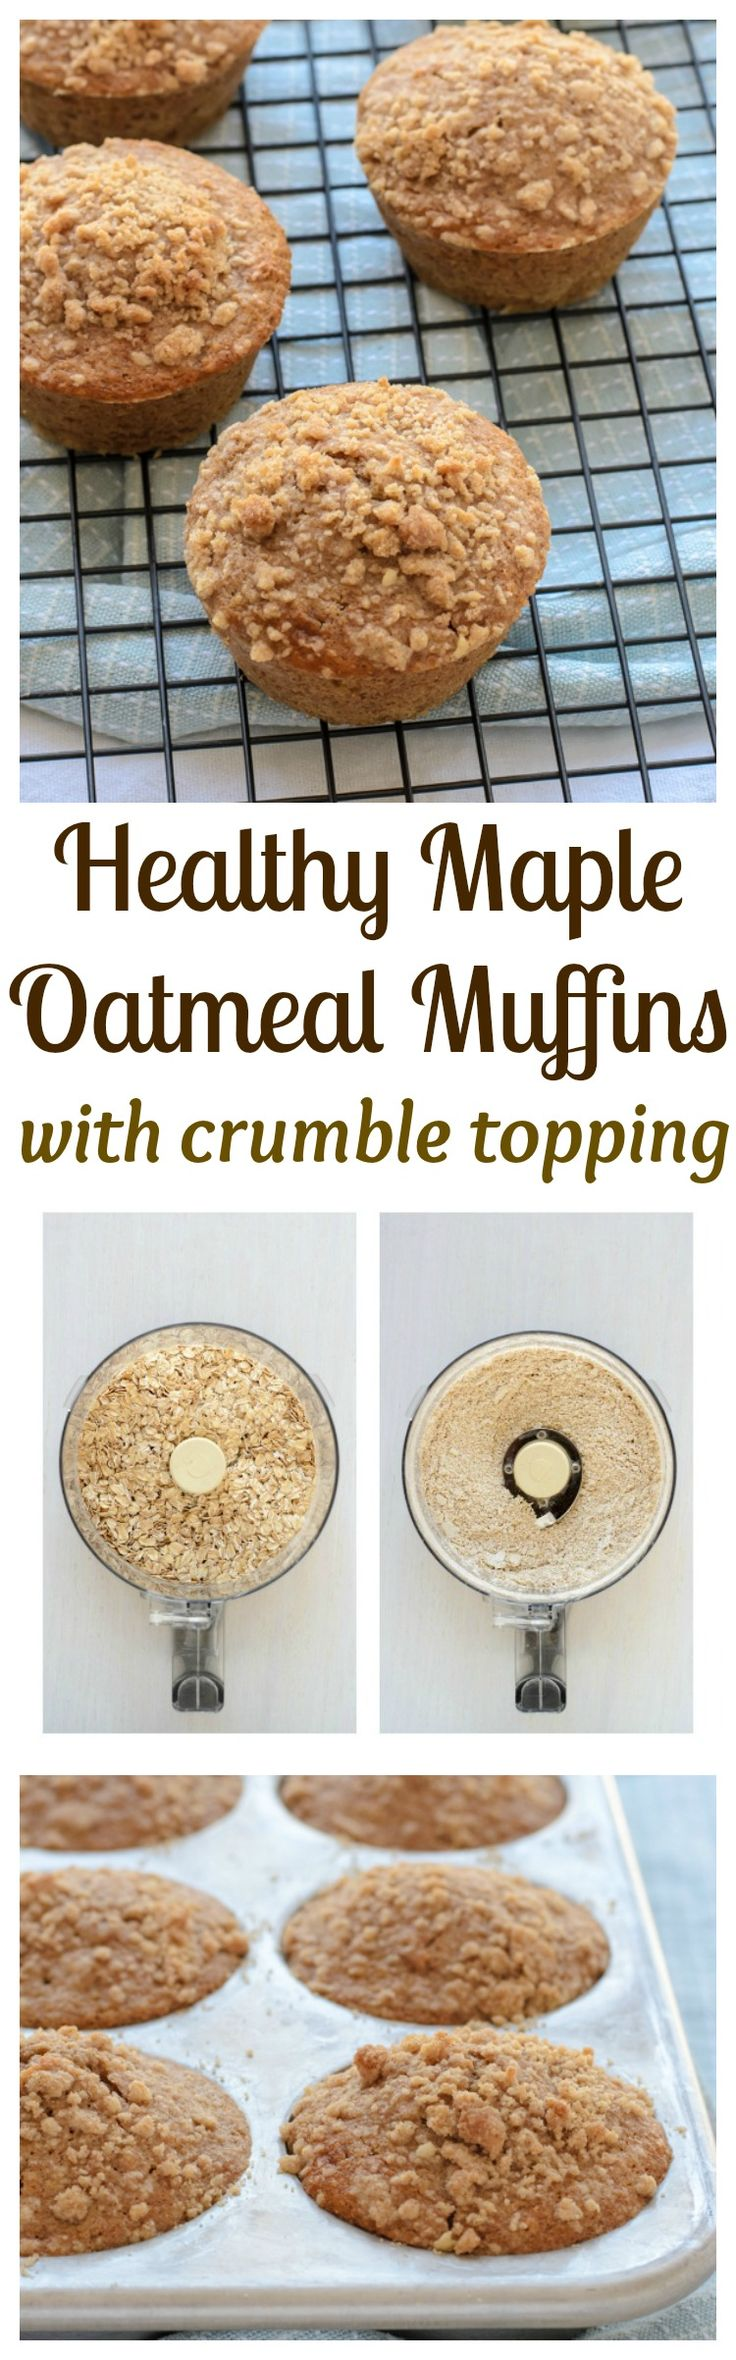 Healthy Maple Oatmeal Muffins. Naturally sweetened, freezer friendly and kid friendly too!